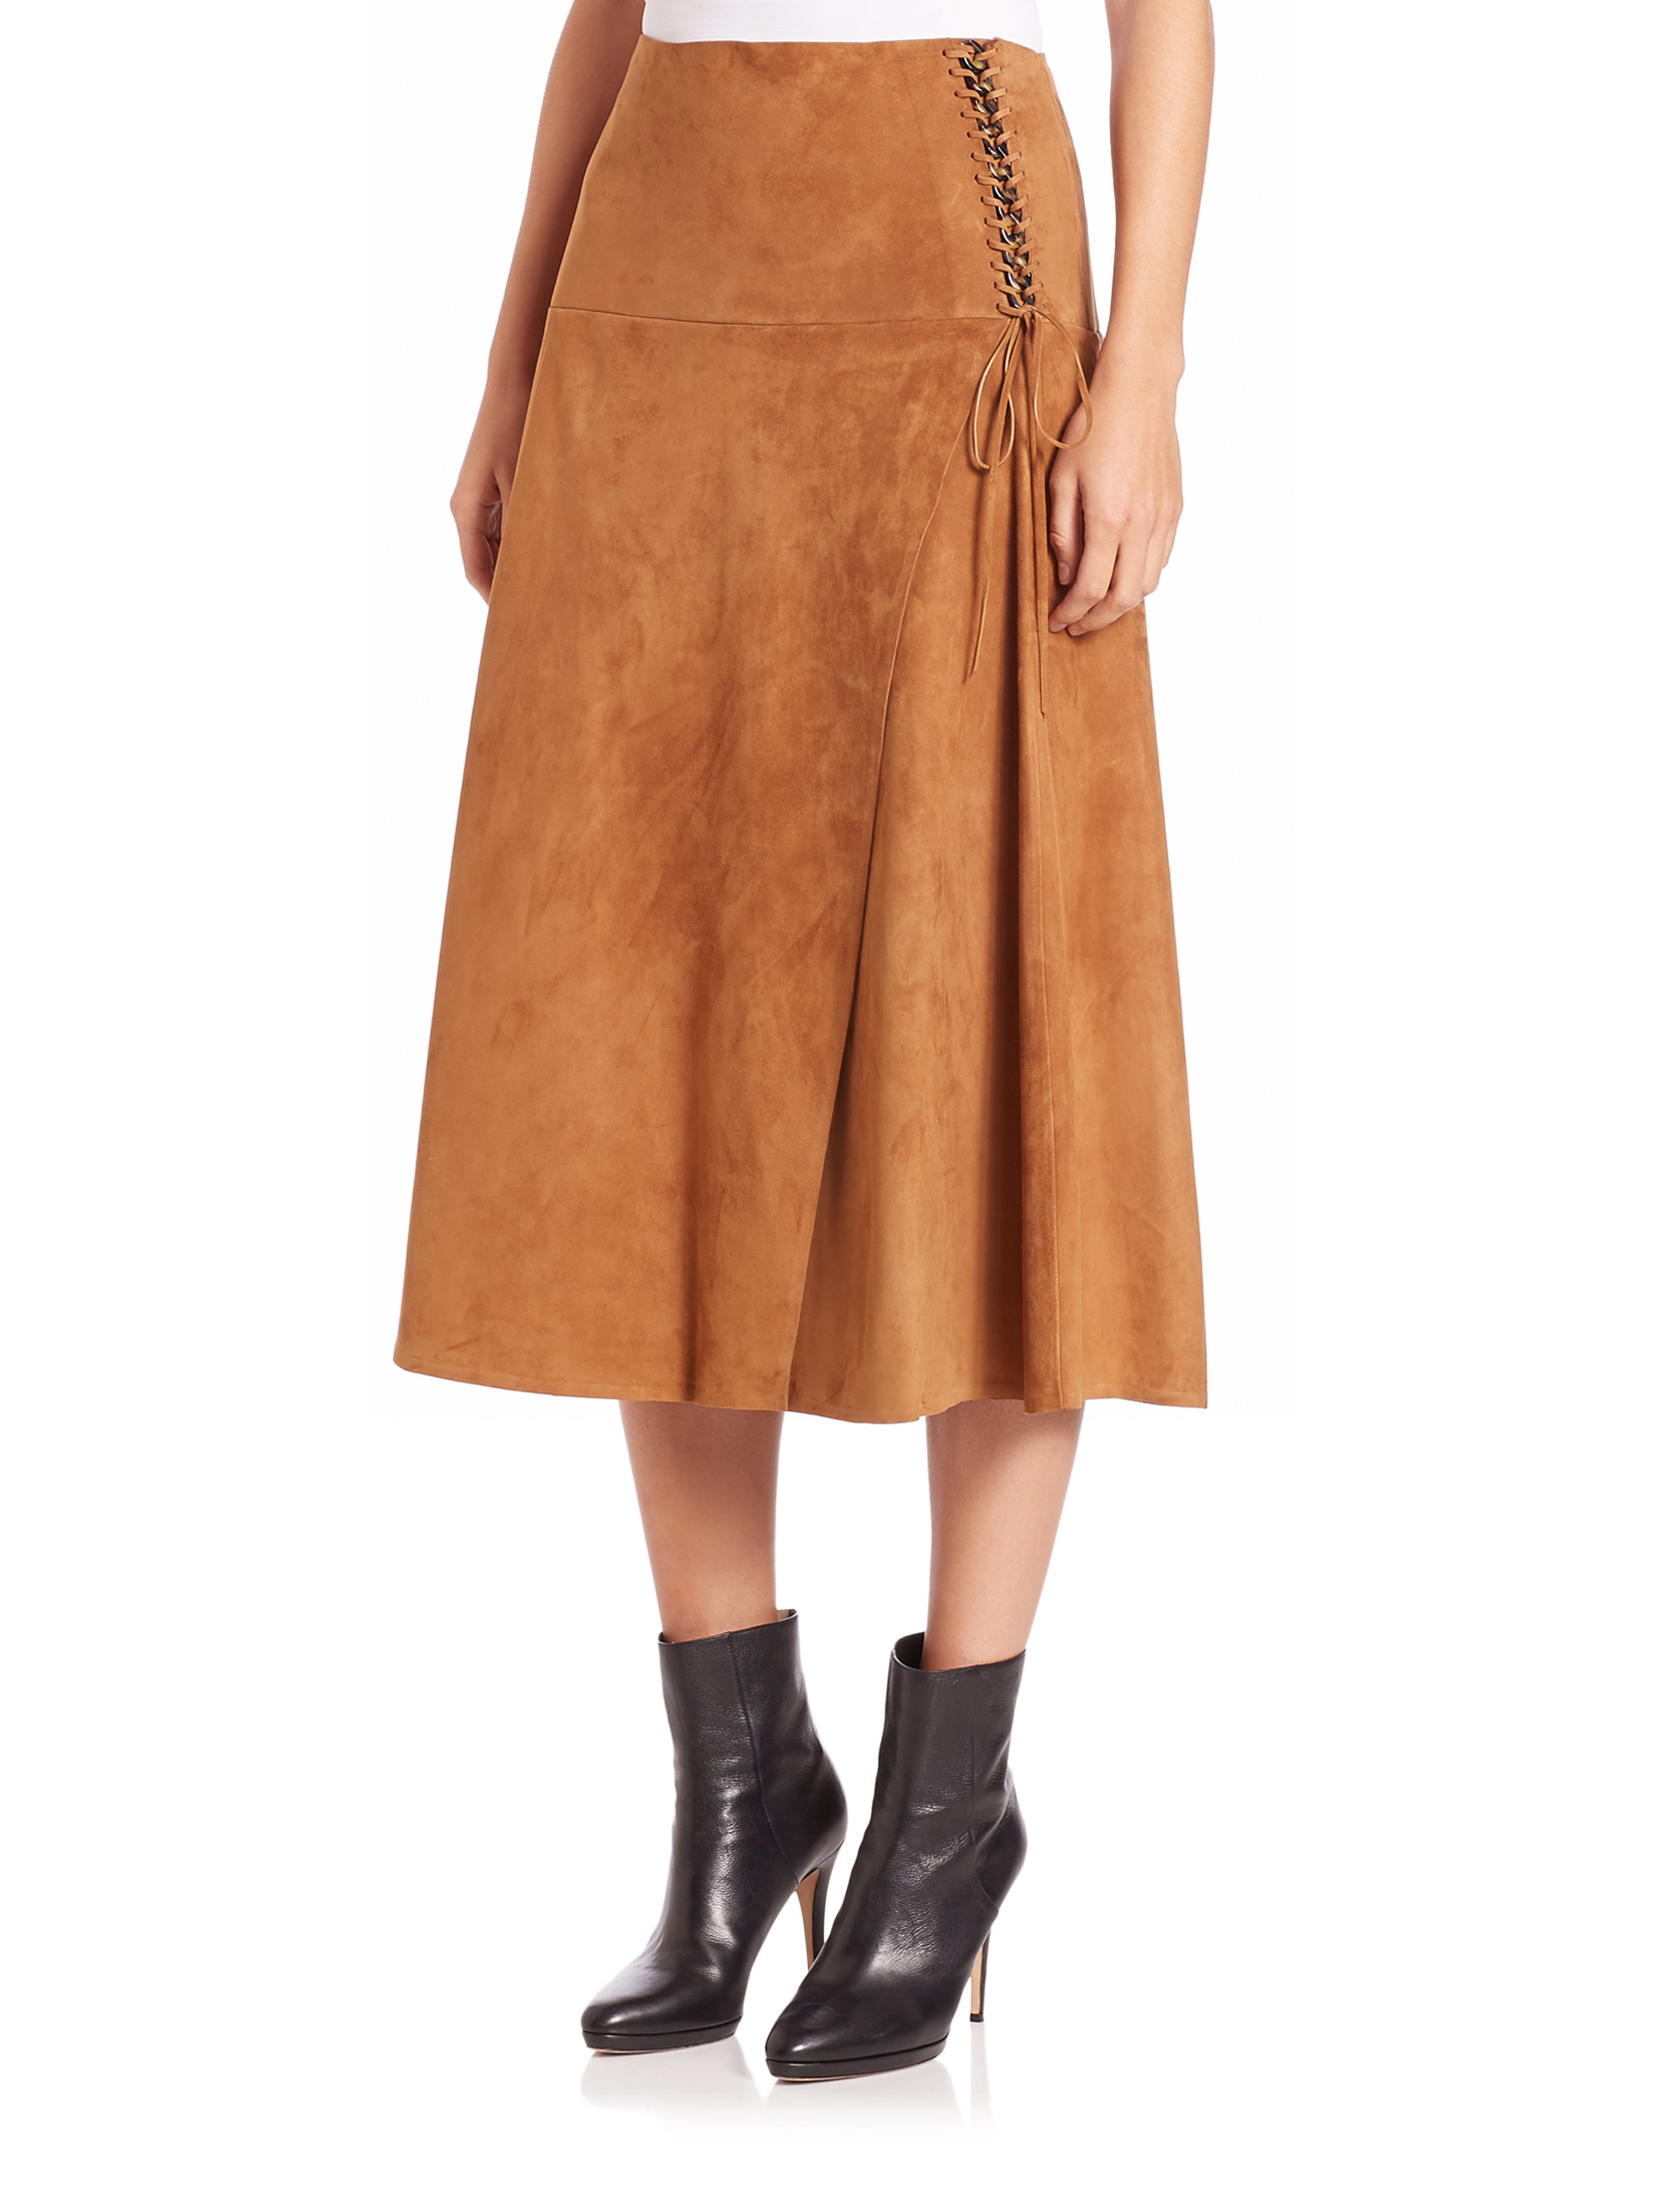 29681b7c26 Ralph Lauren Collection Aiden Suede Lace-up Midi Skirt in Orange - Lyst